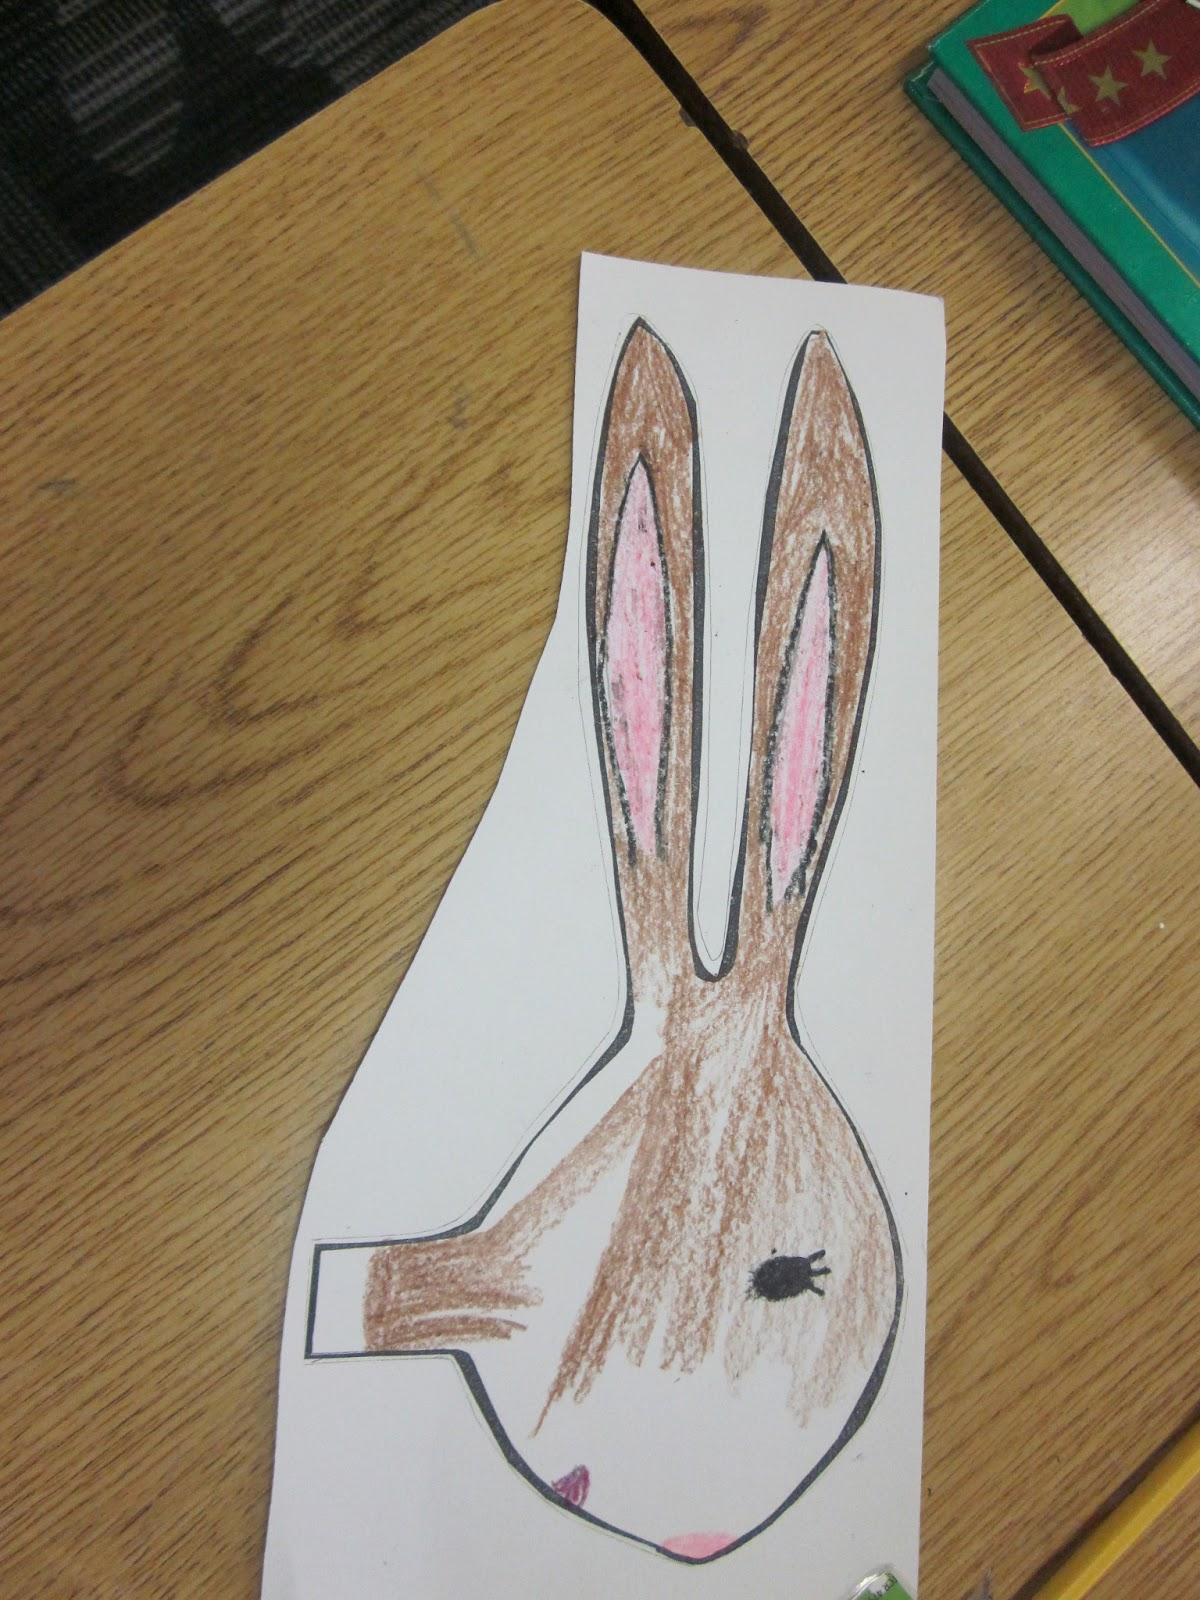 first grade fairytales duck rabbit oooh i have an